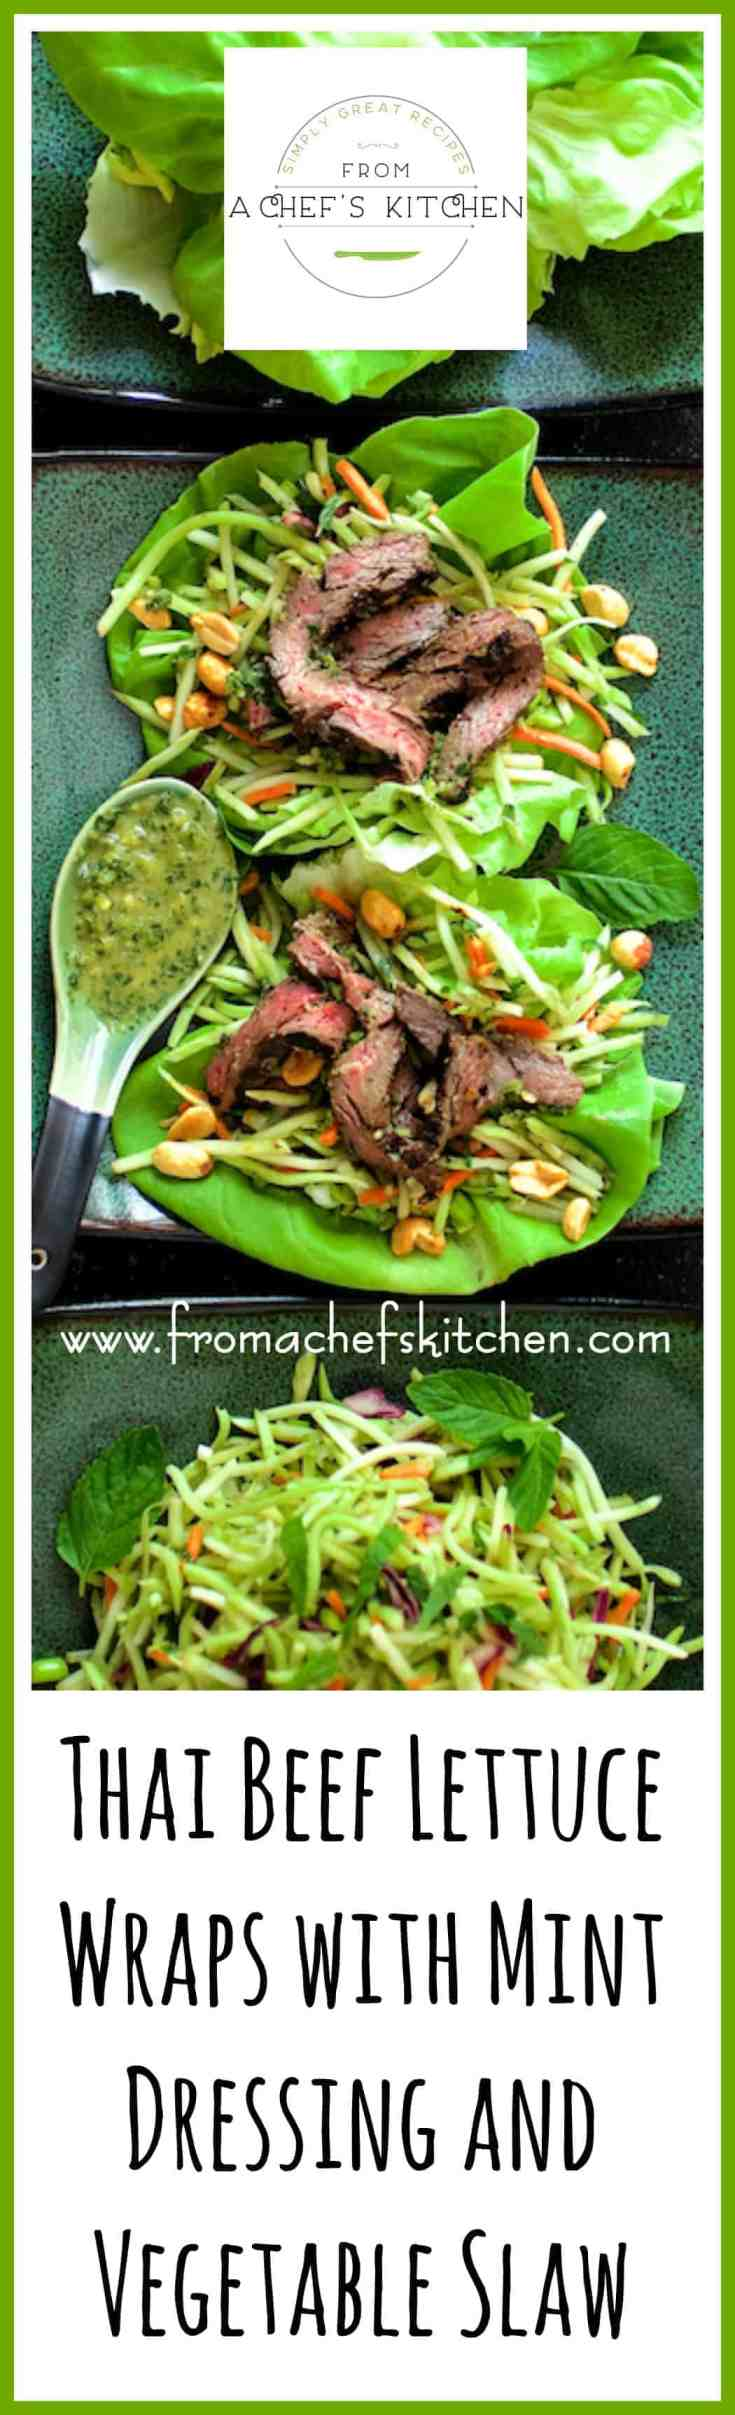 Thai Beef Lettuce Wraps with Mint Dressing and Vegetable Slaw is full of fresh, crunchy vegetables and lively herbs!  It's the perfect meal to make when the mint hits the fan! #Thaifood #Thai #beef #beeflettucewrap #mint #vegetable